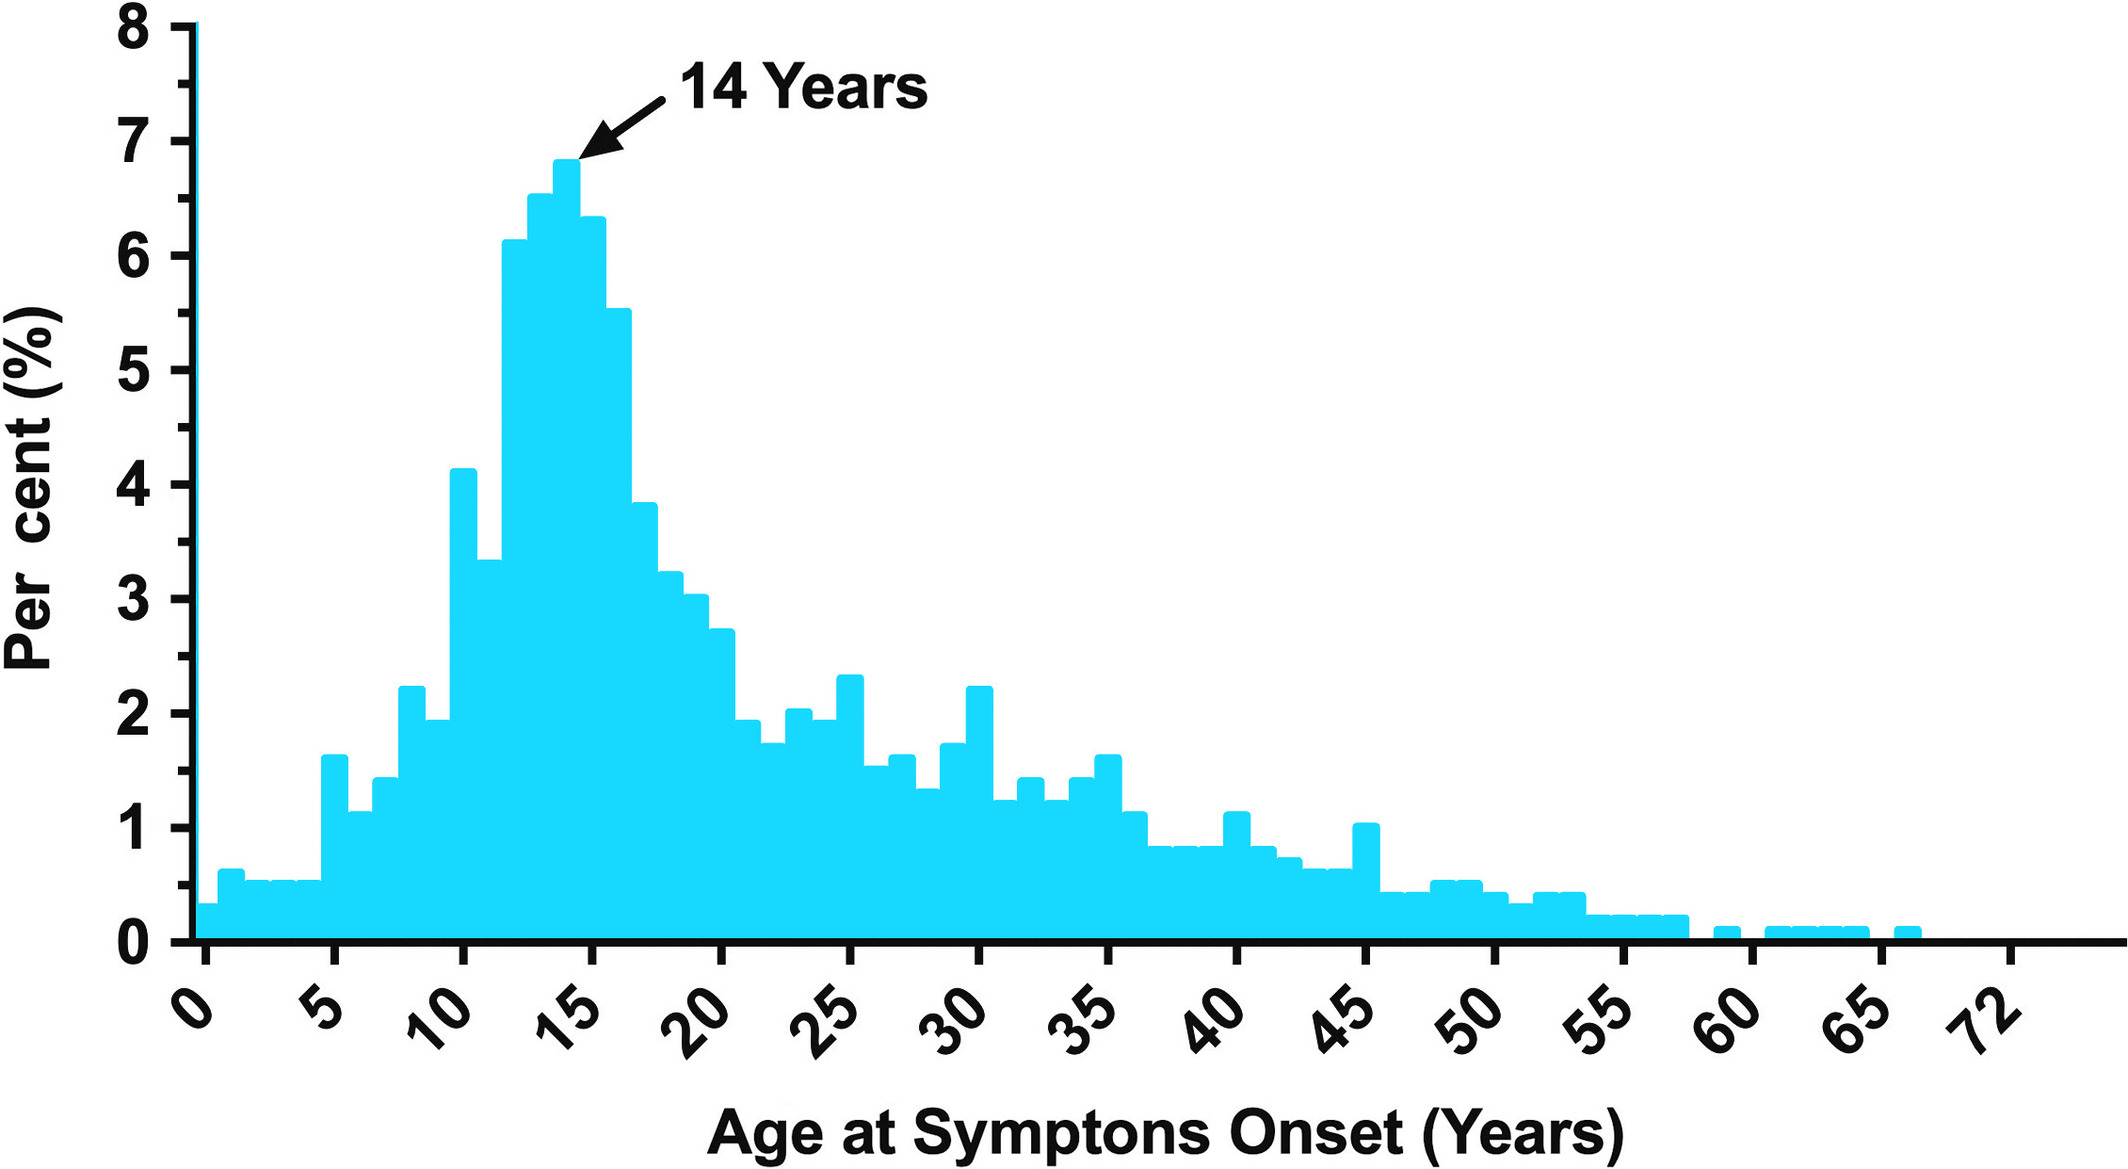 Age of symptom onset. Distribution of reported symptom onset age amongst survey participants.